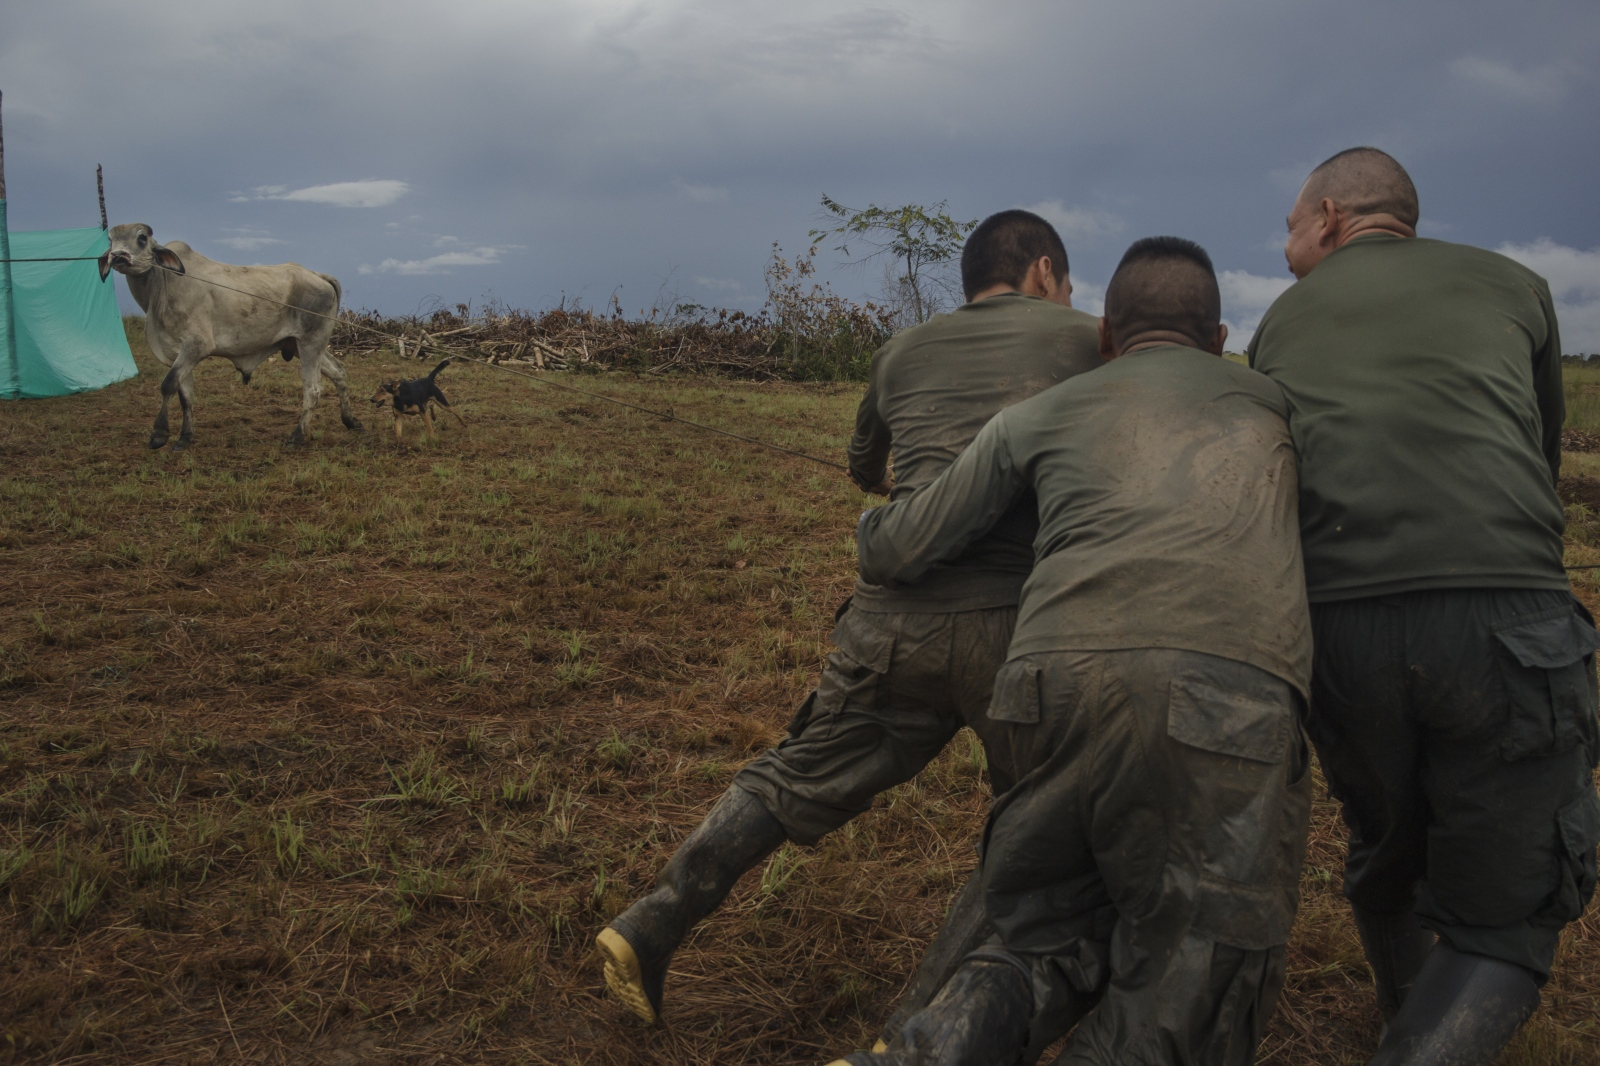 FARC EP guerrillas mobilizing cattle to sacrifice it